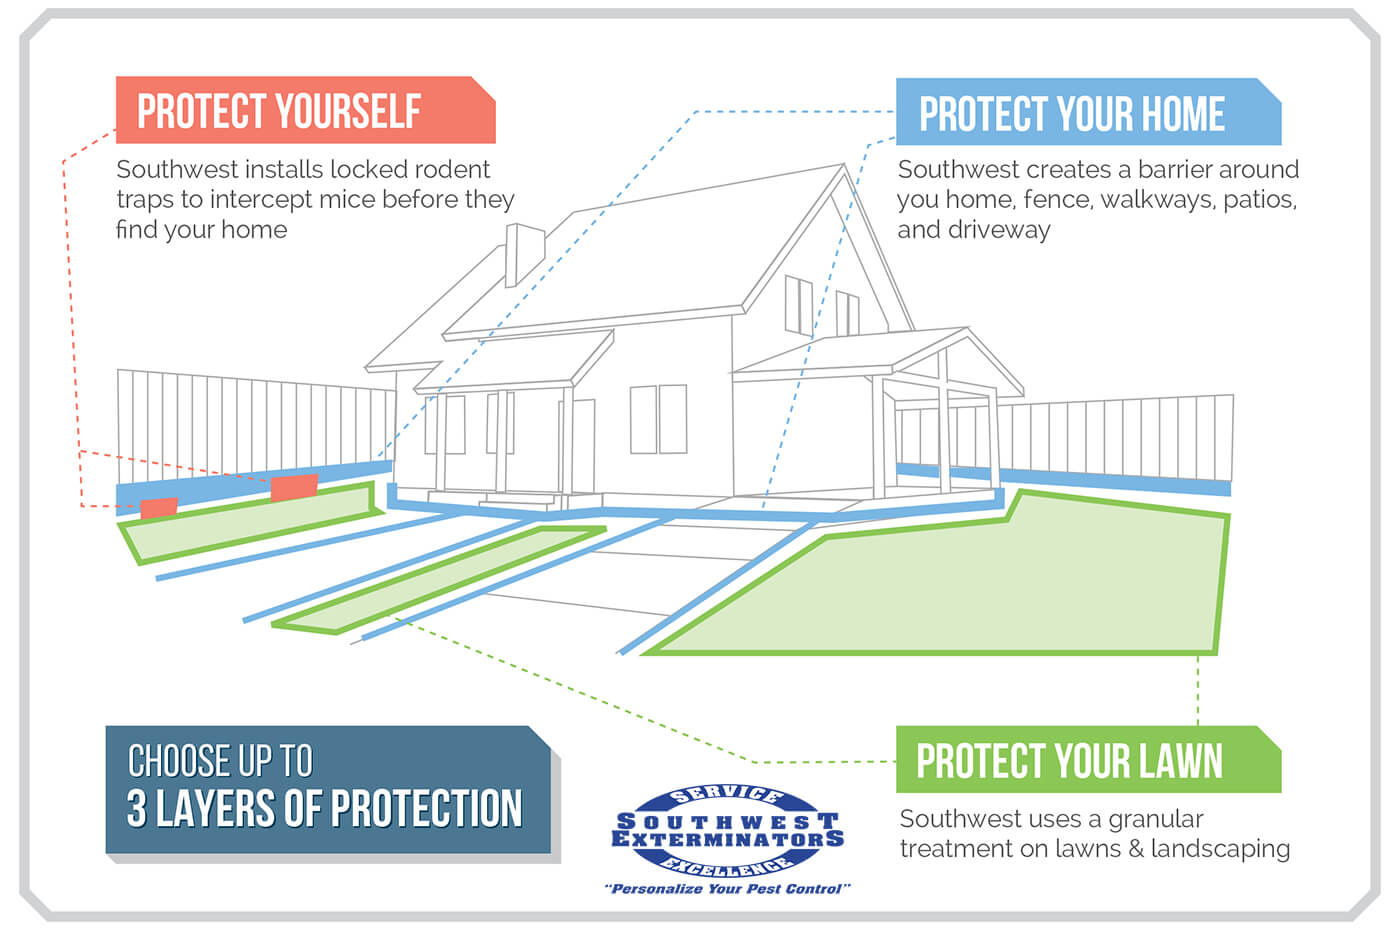 graphic showing SW Exterminator barrier protection - 3 layers to protect you, your home, and your lawn